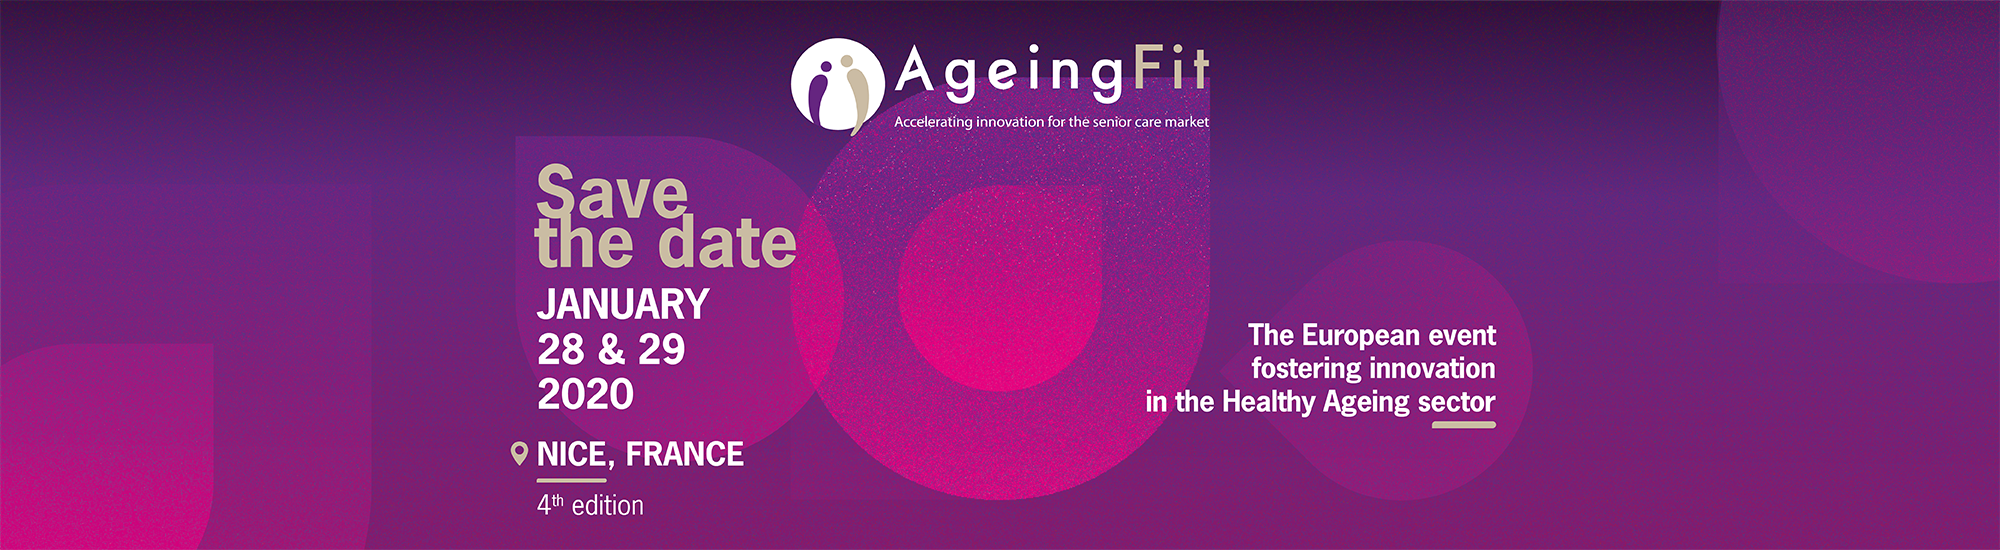 LiCalab supports Ageing Fit - 29th and 30th January 2019